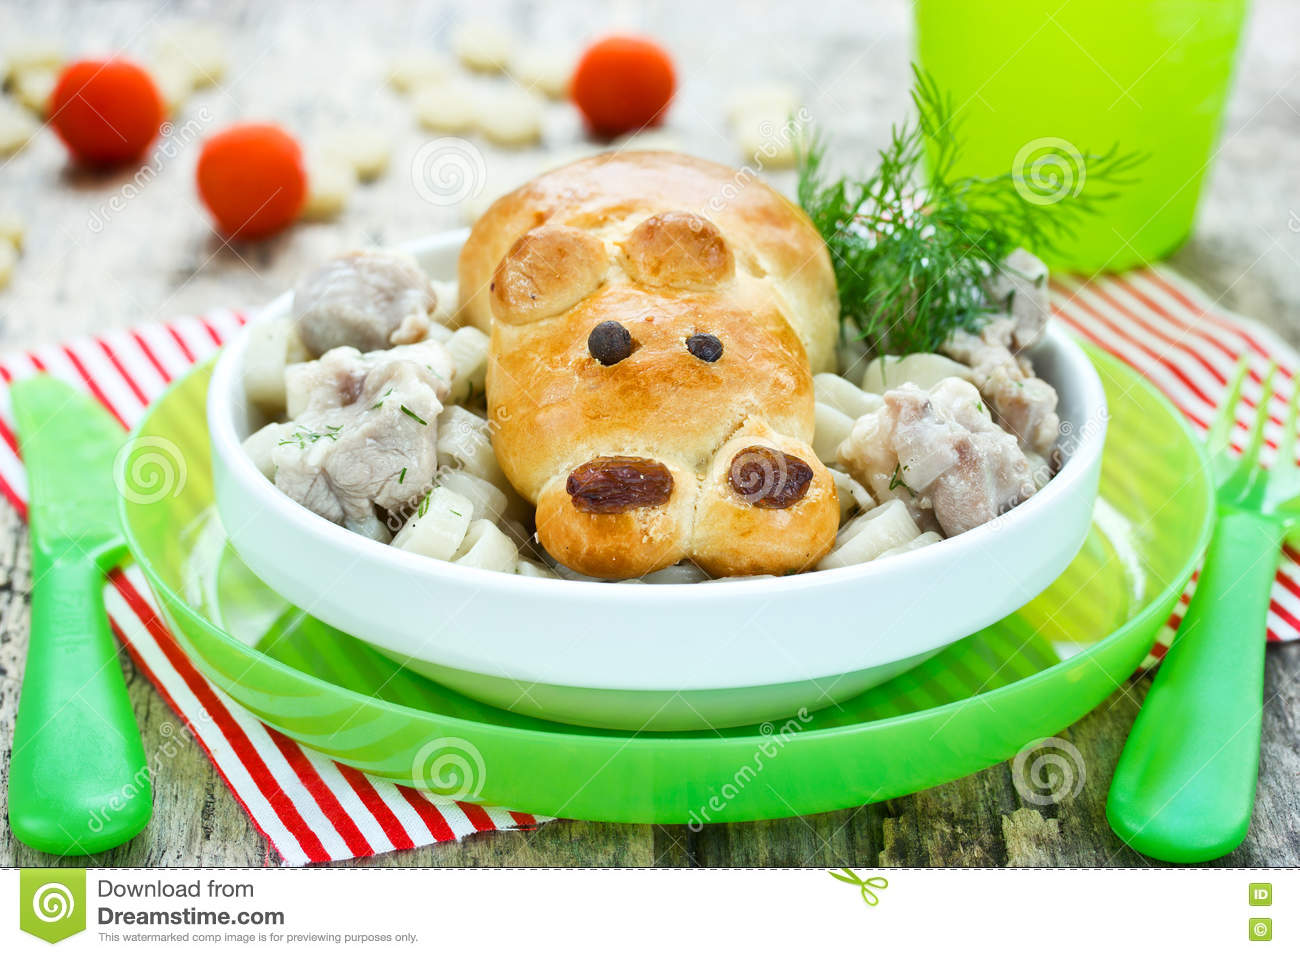 Stew meat with bun shaped funny hippo - creative idea for kids d